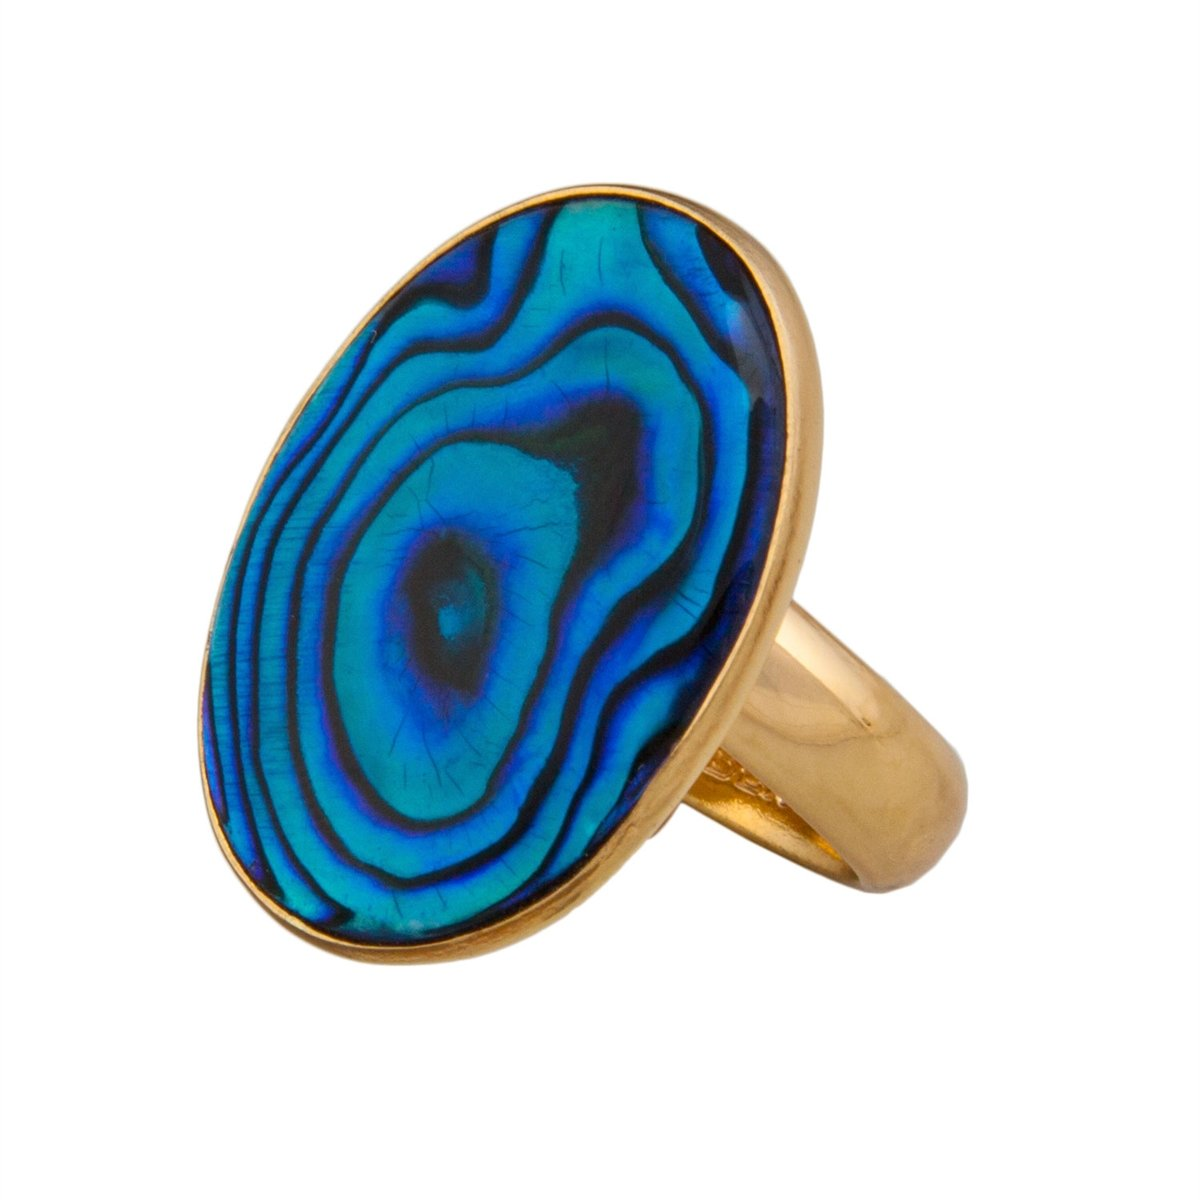 Alchemia Blue Abalone Adjustable Ring | Charles Albert Jewelry